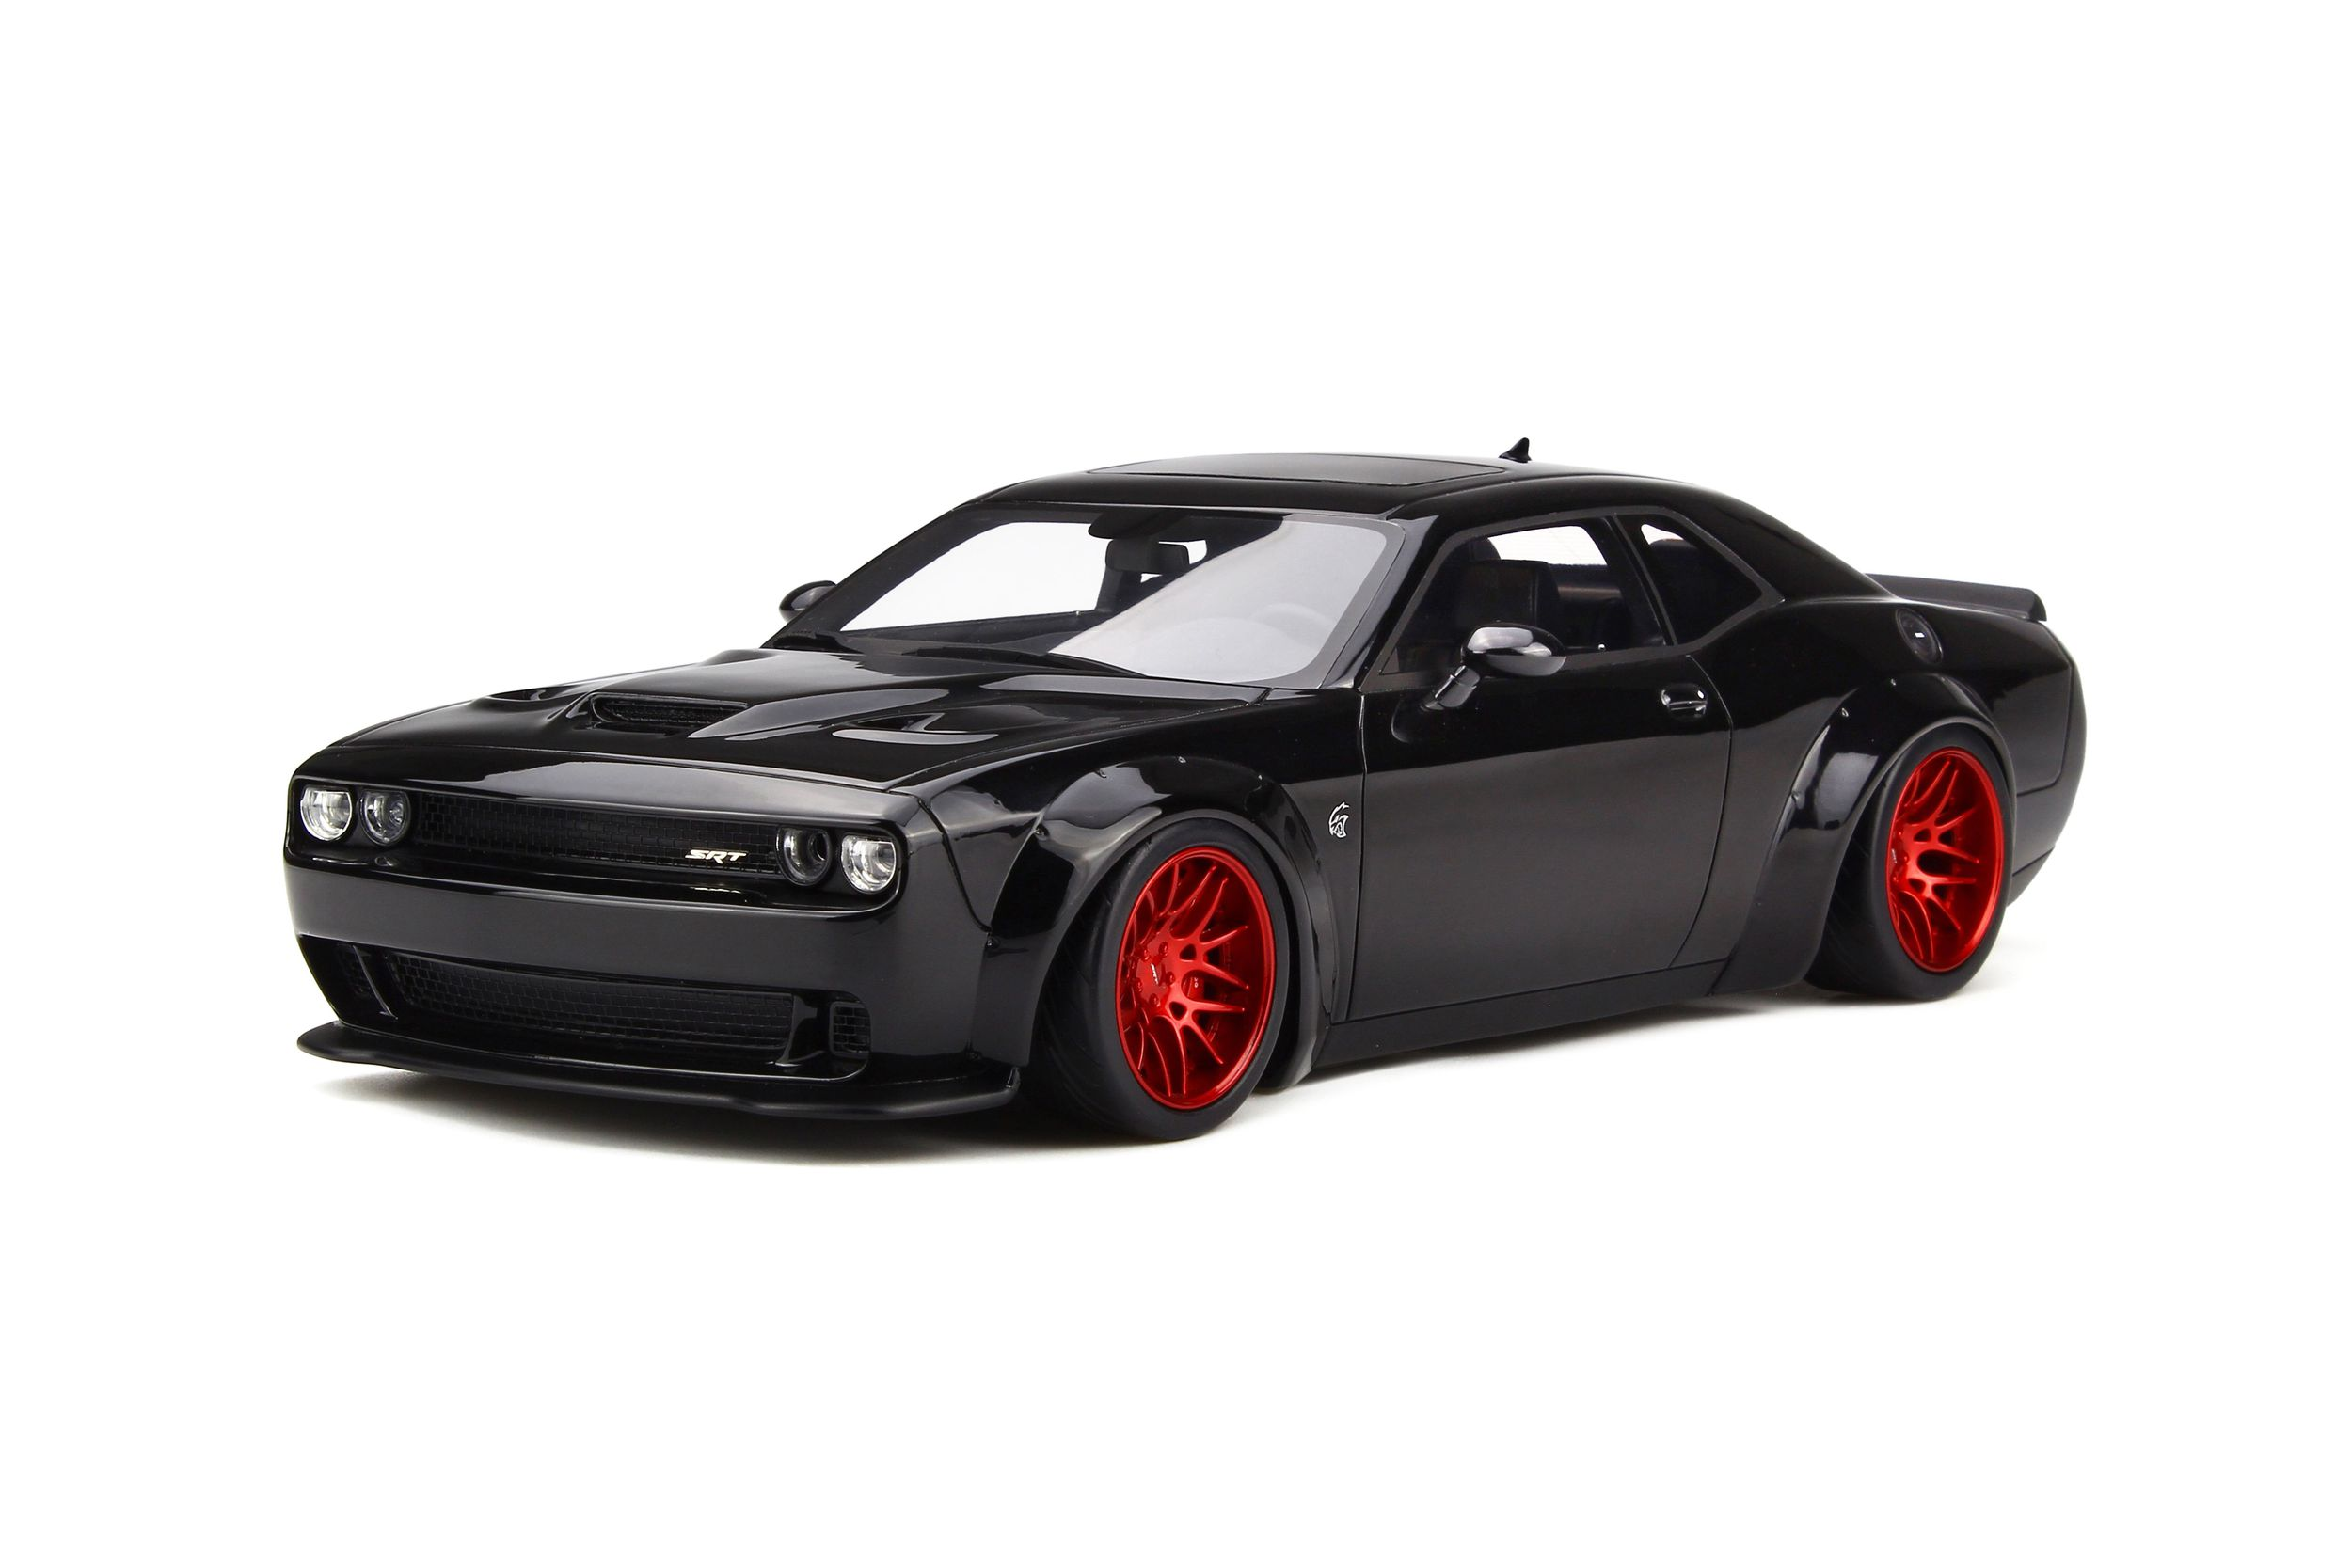 Dodge Challenger Srt Tuned By Lb Performance Model Car Collection